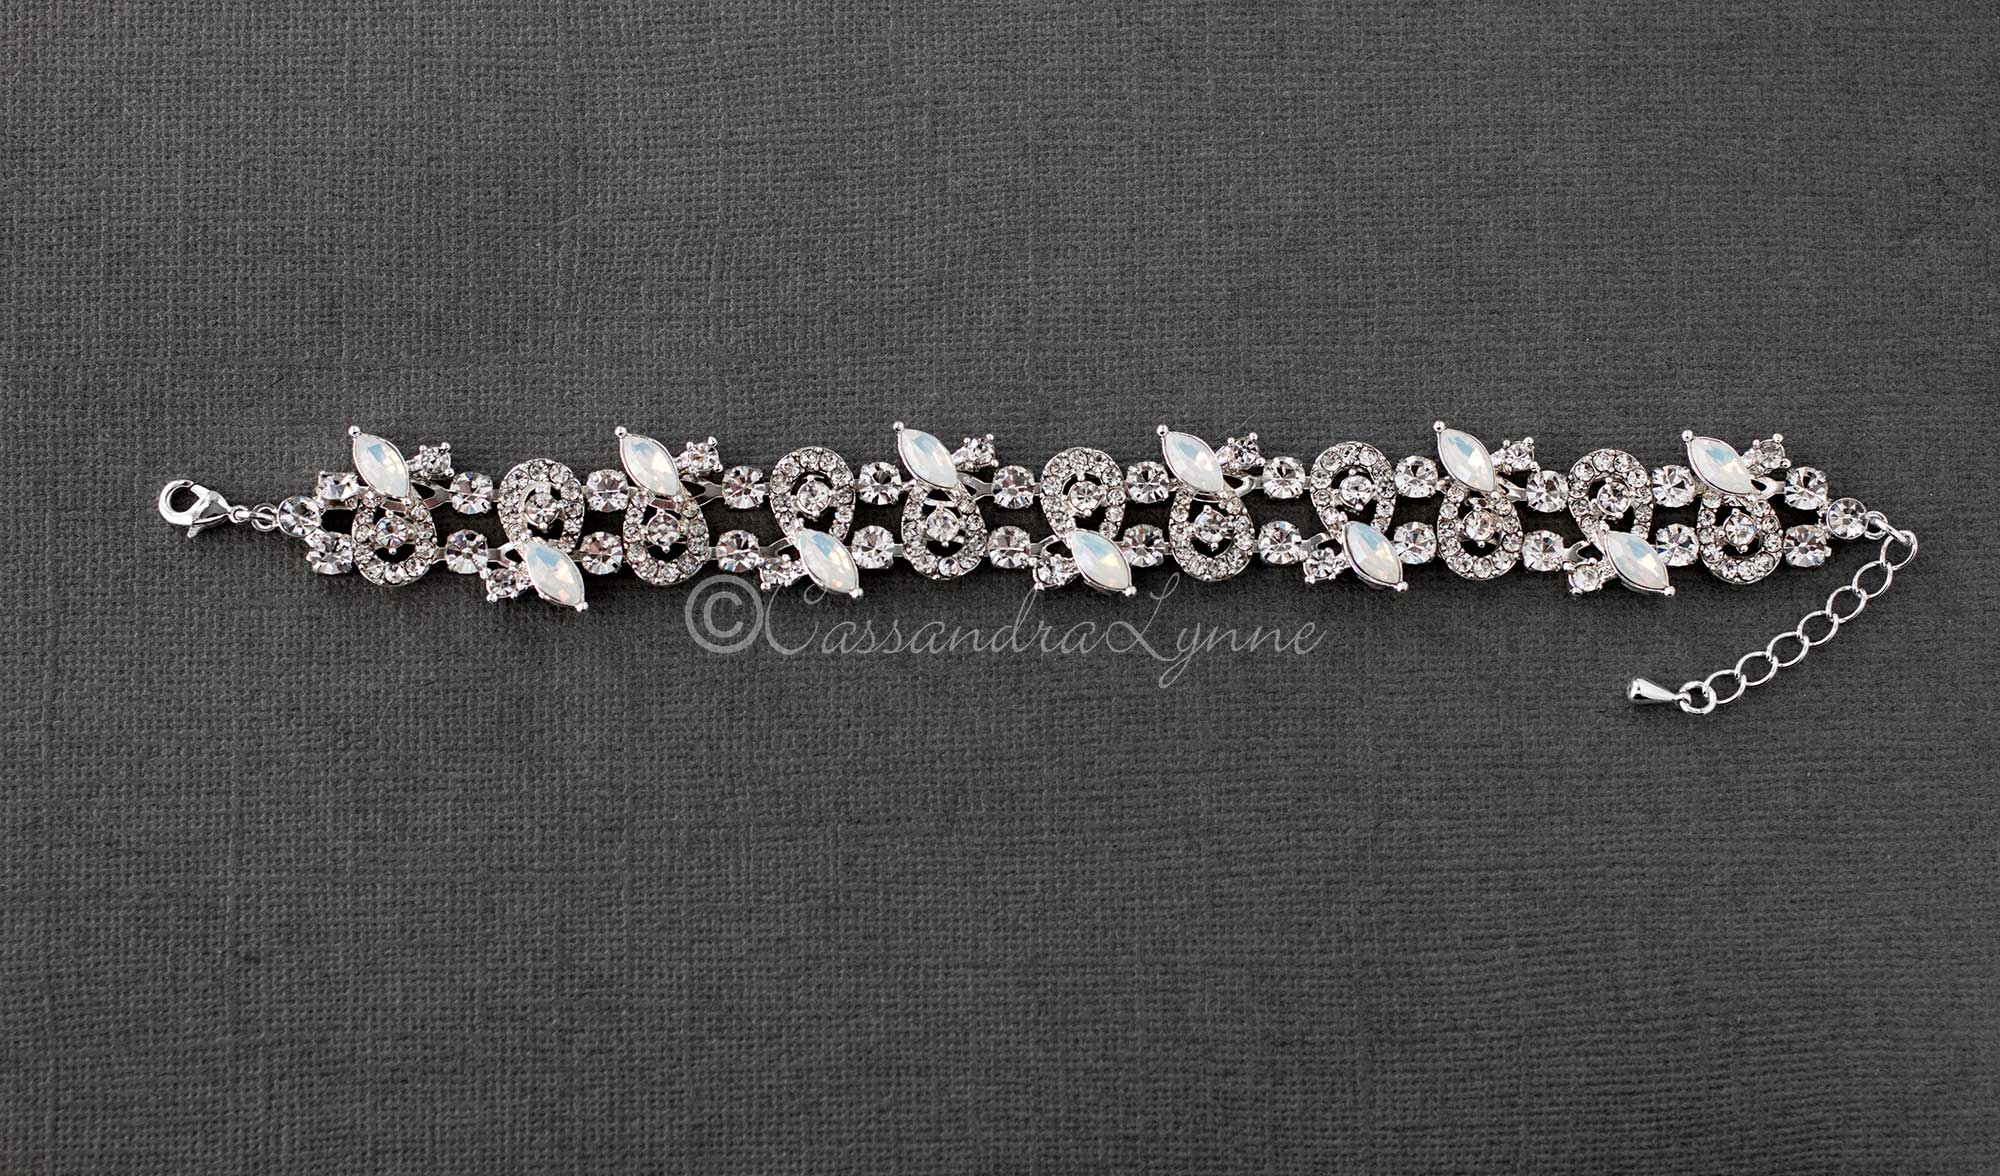 Crystal Bridal Bracelet with Opal Marquise Stones